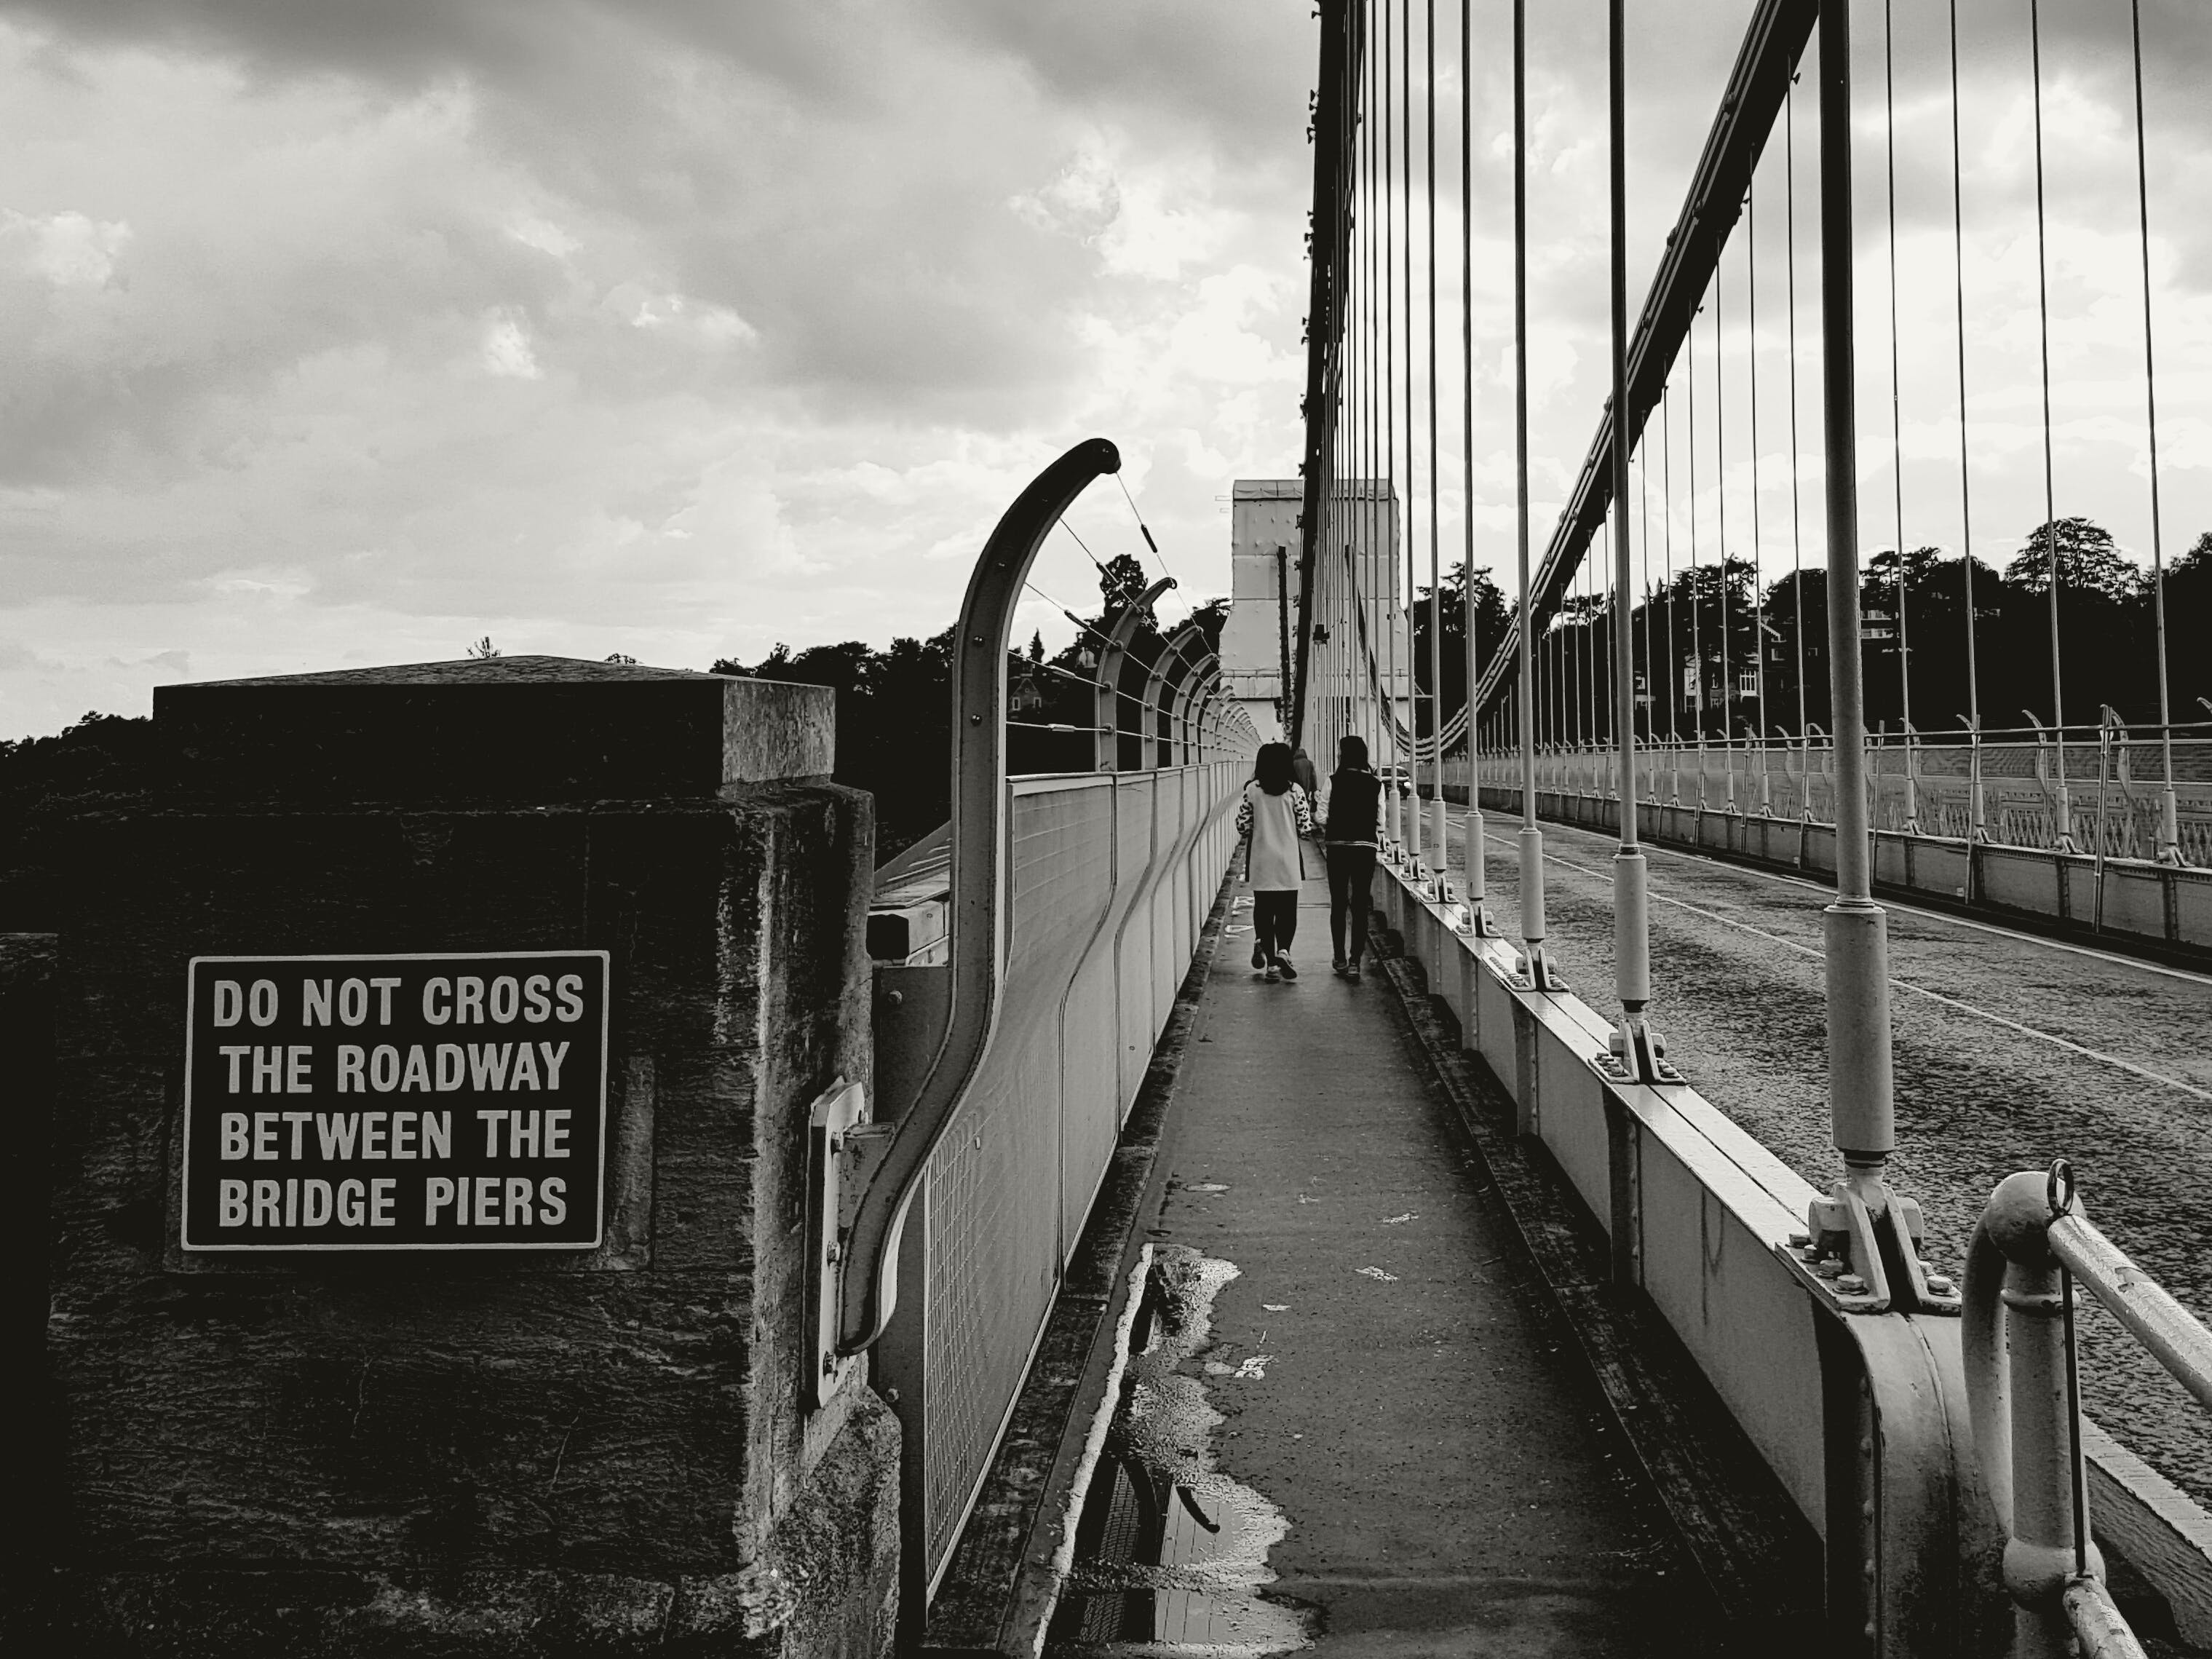 Two People Walking on the Sidewalk of the Bridge